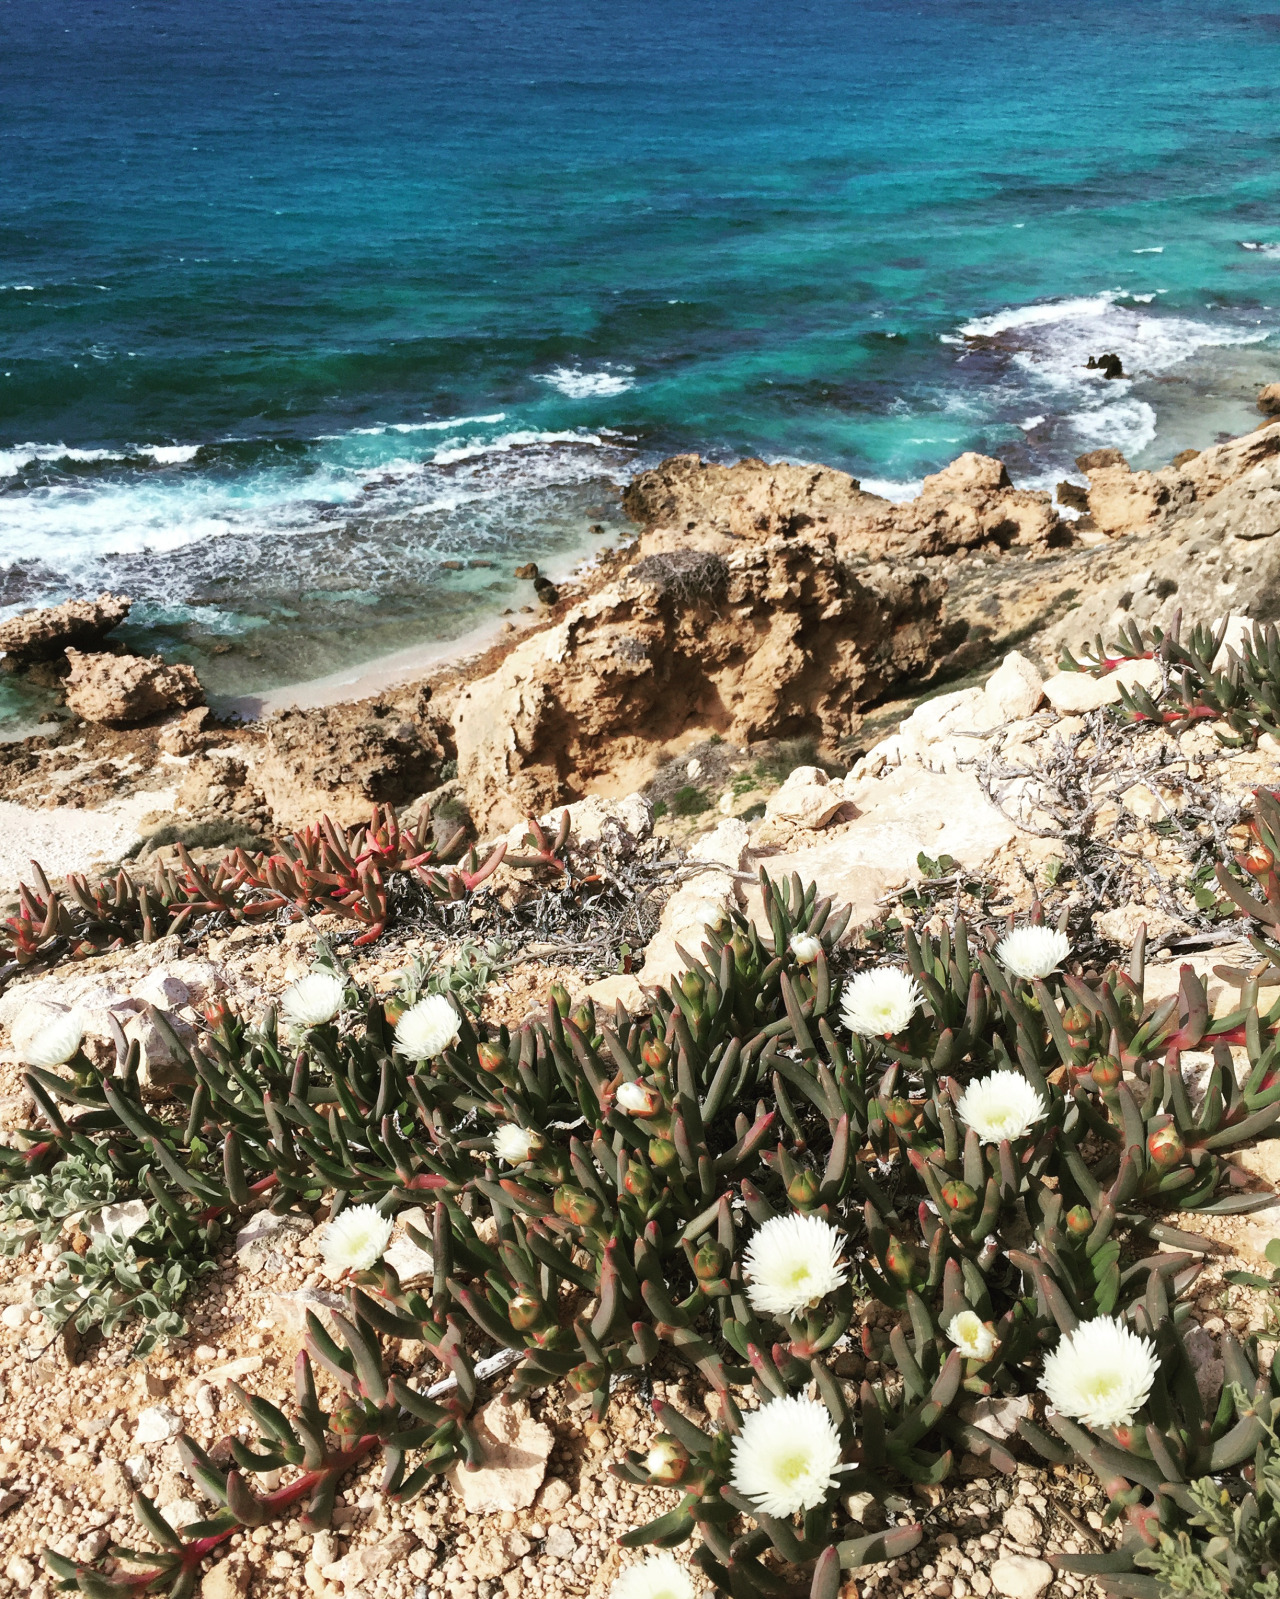 These flowers only grow on Dirt Hartog island, no where else!